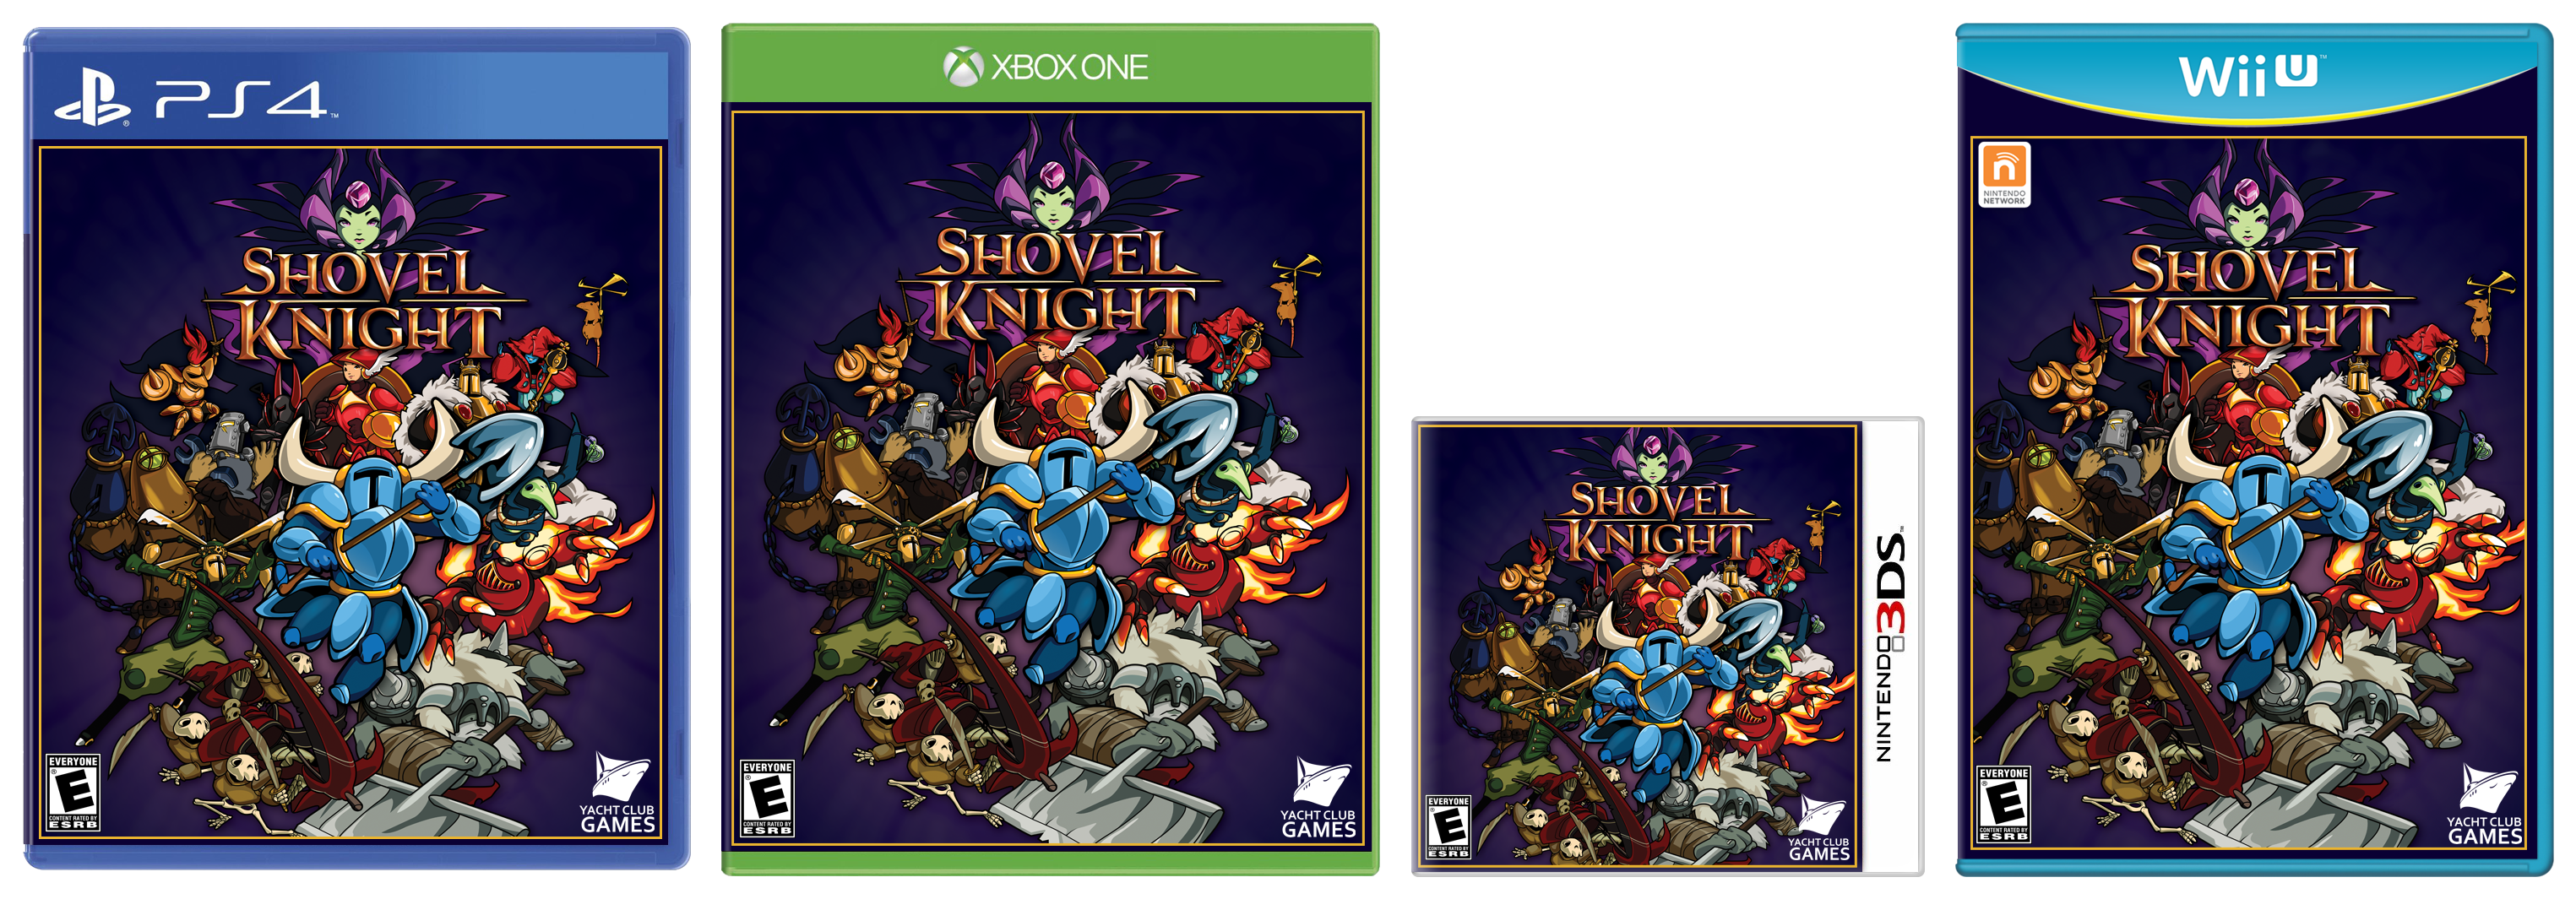 shovel-knight-retail